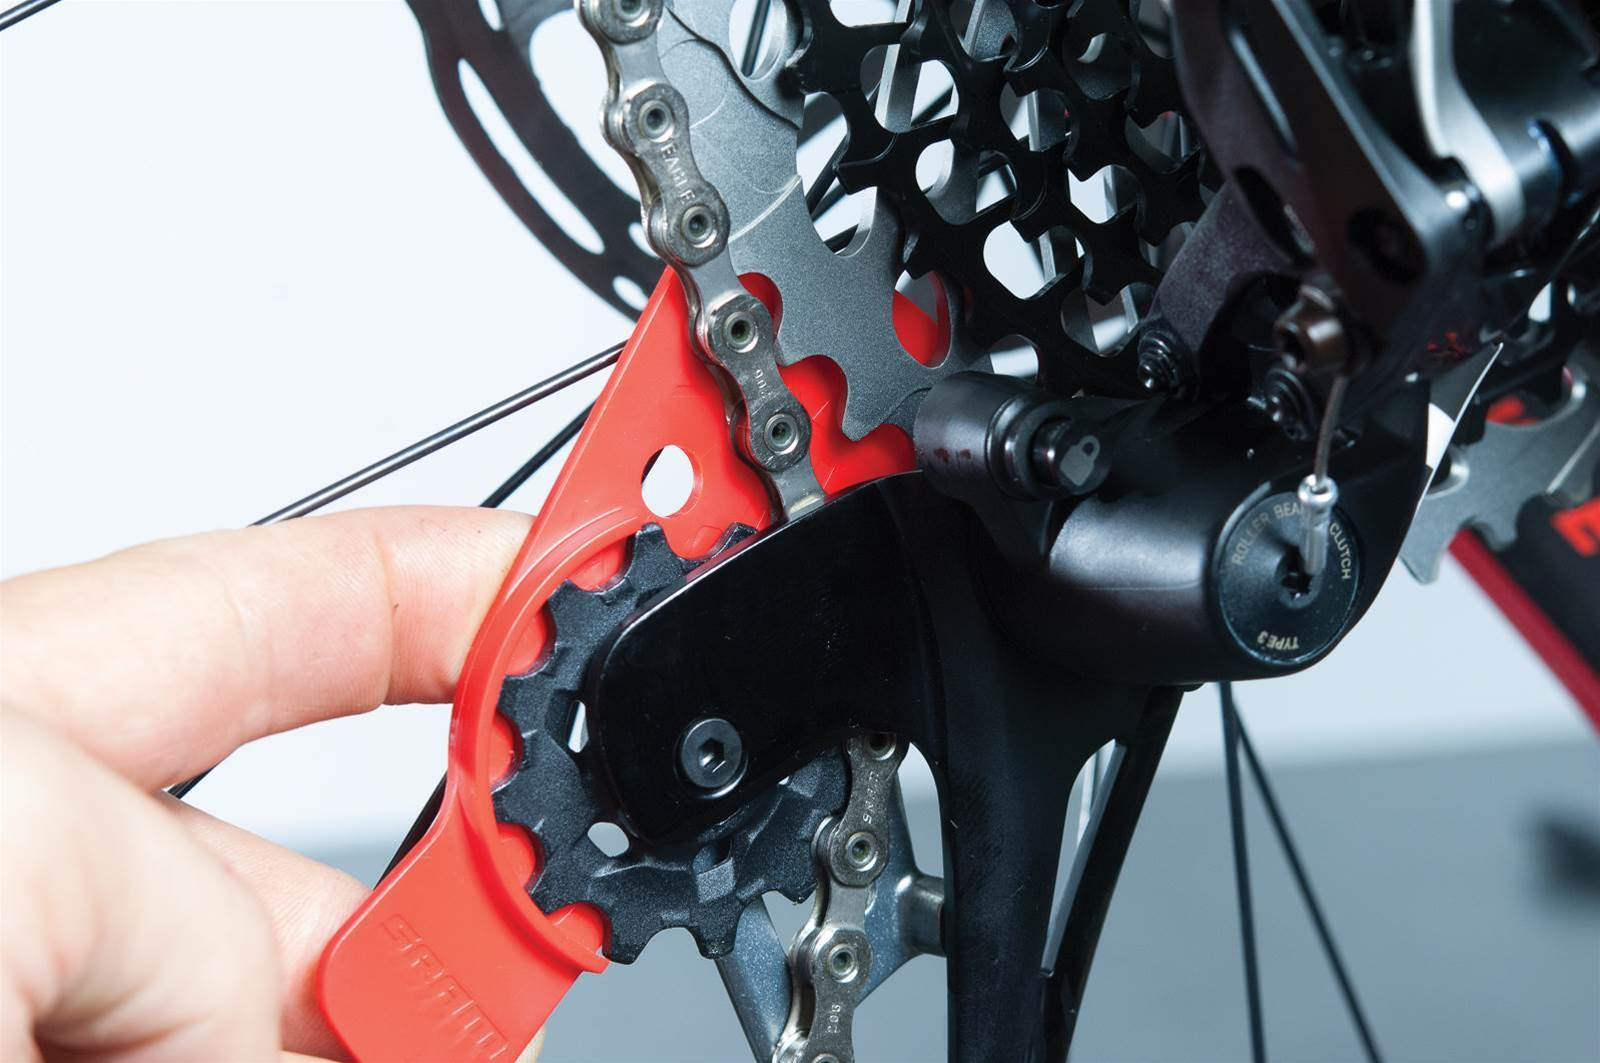 How To Set Up Sram Eagle Australian Mountain Bike The Home For Rear Derailleur Diagram Last Limit Screw Adjust On Mech Is B Tension This You Will Need Compress End Desired Sag Position